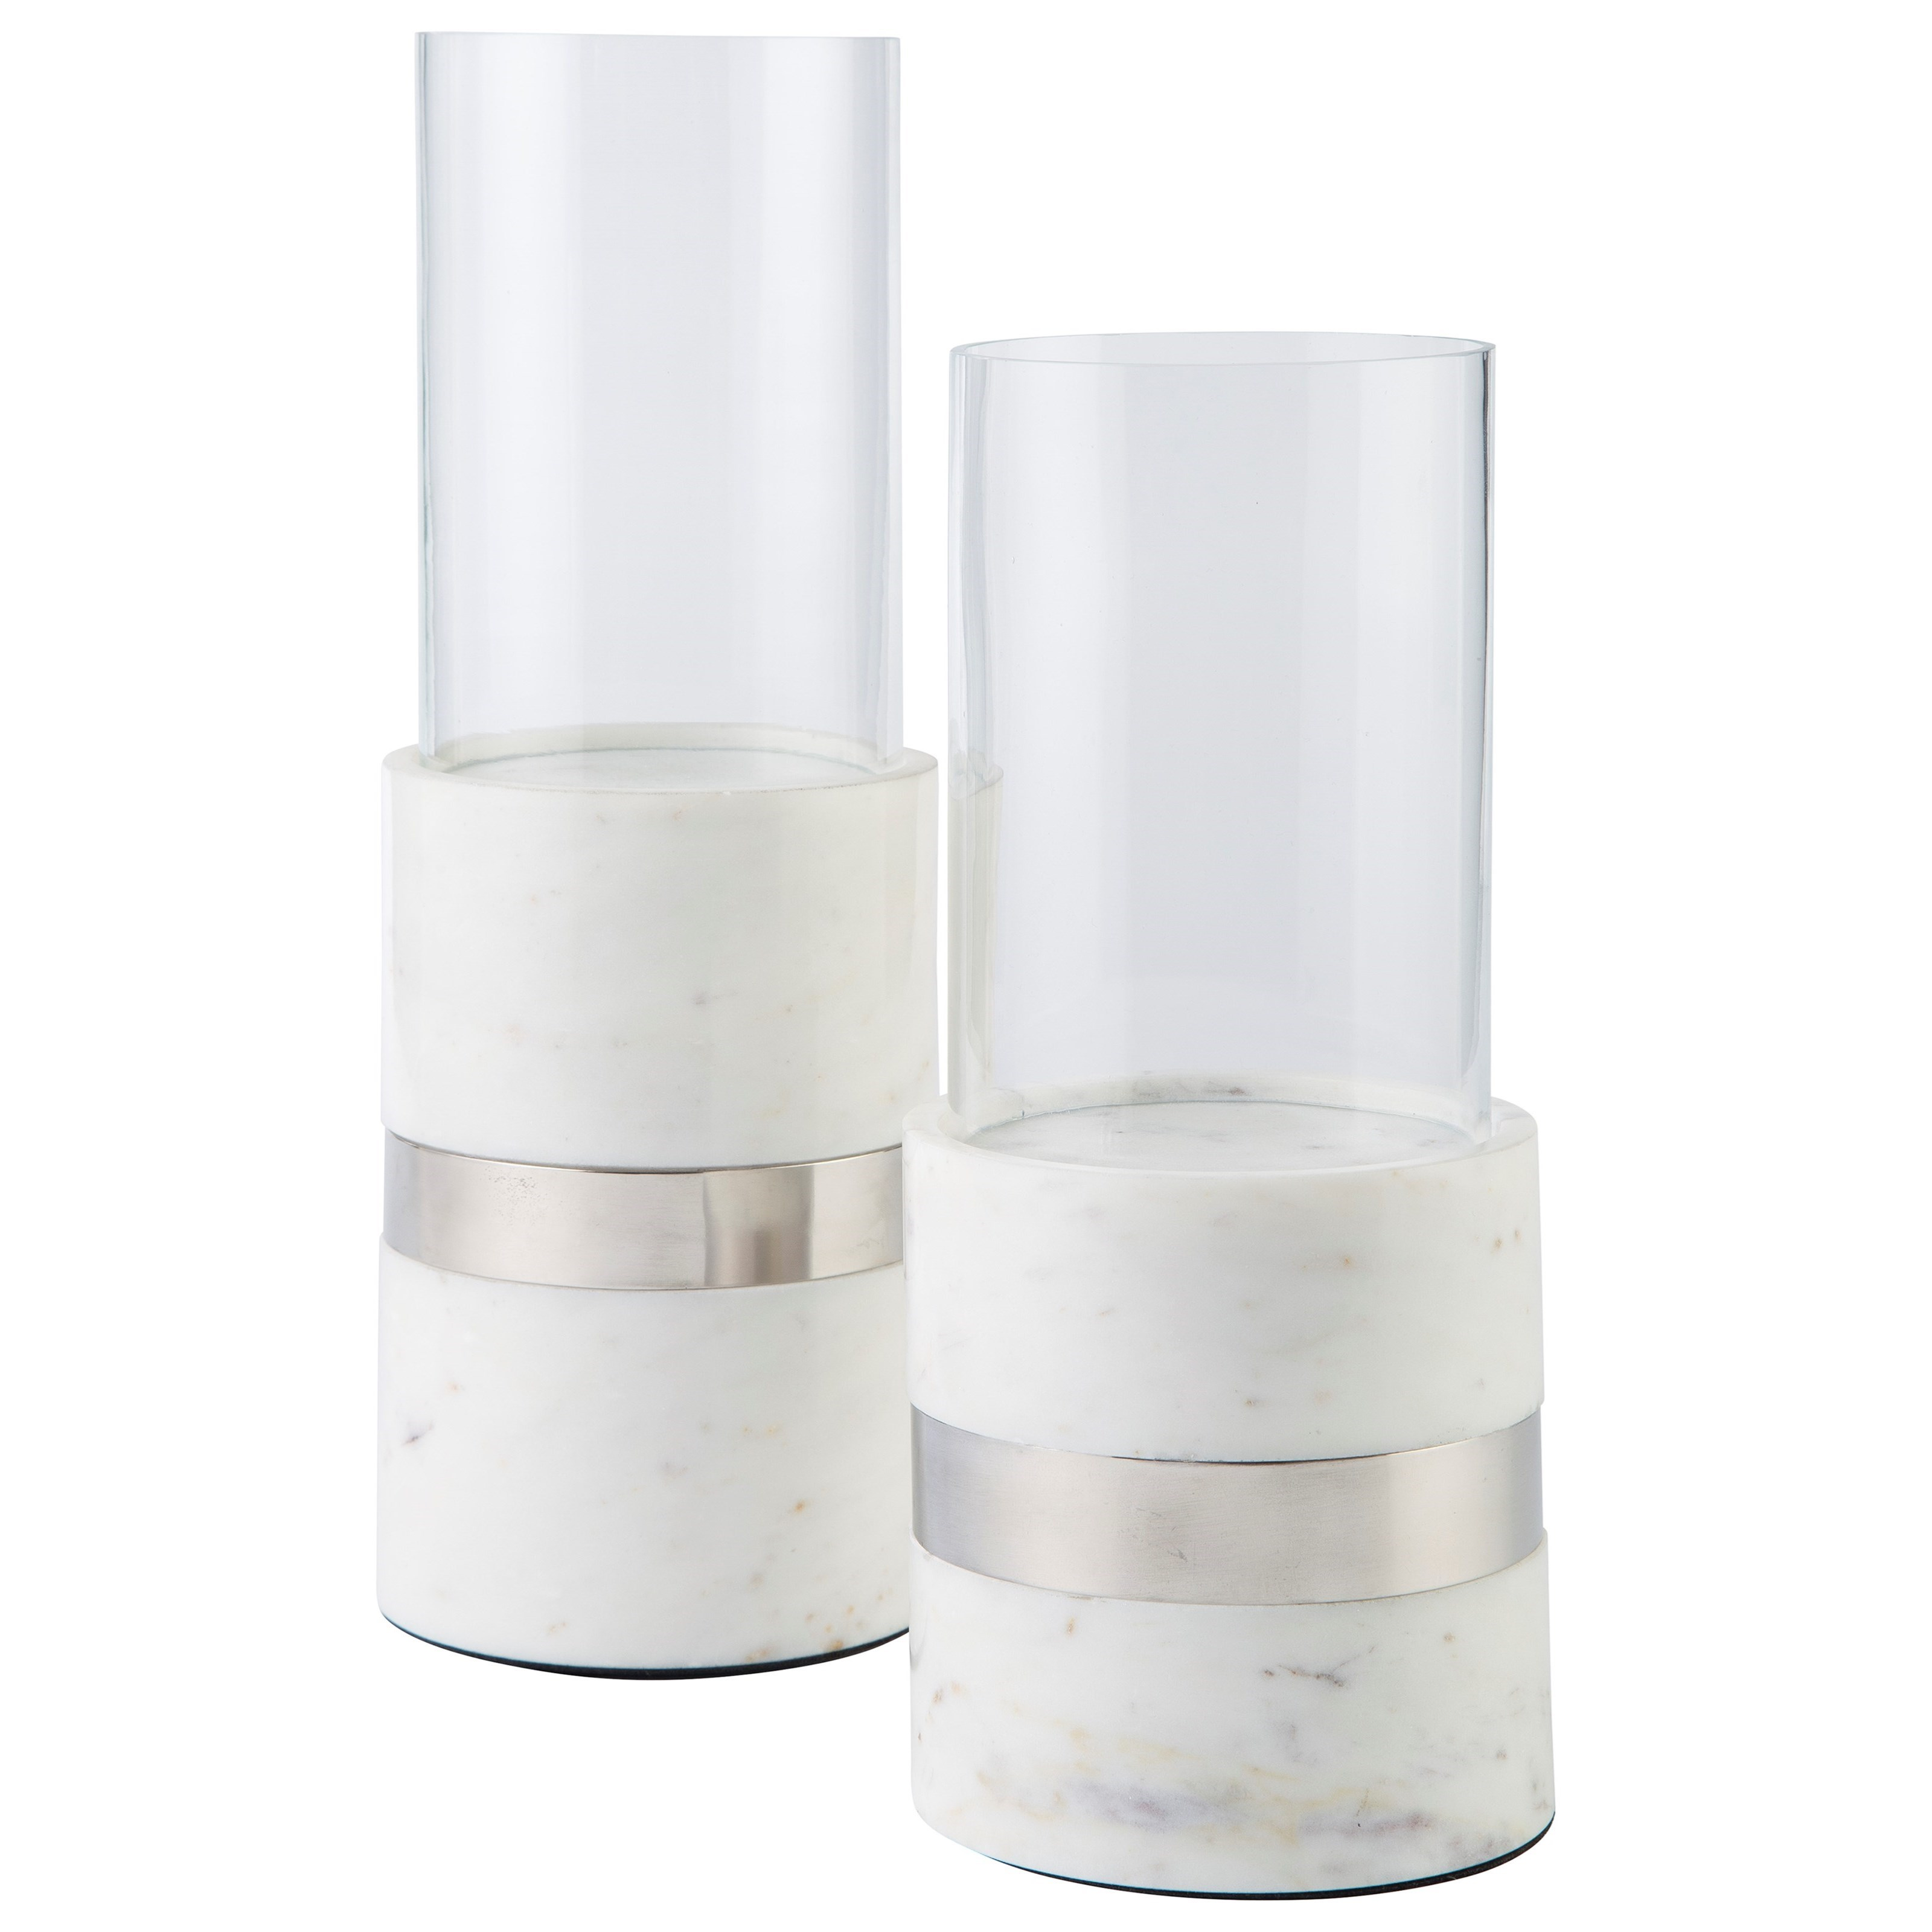 Accents Gracelyn White/Silver Candle Holder Set by Ashley (Signature Design) at Johnny Janosik